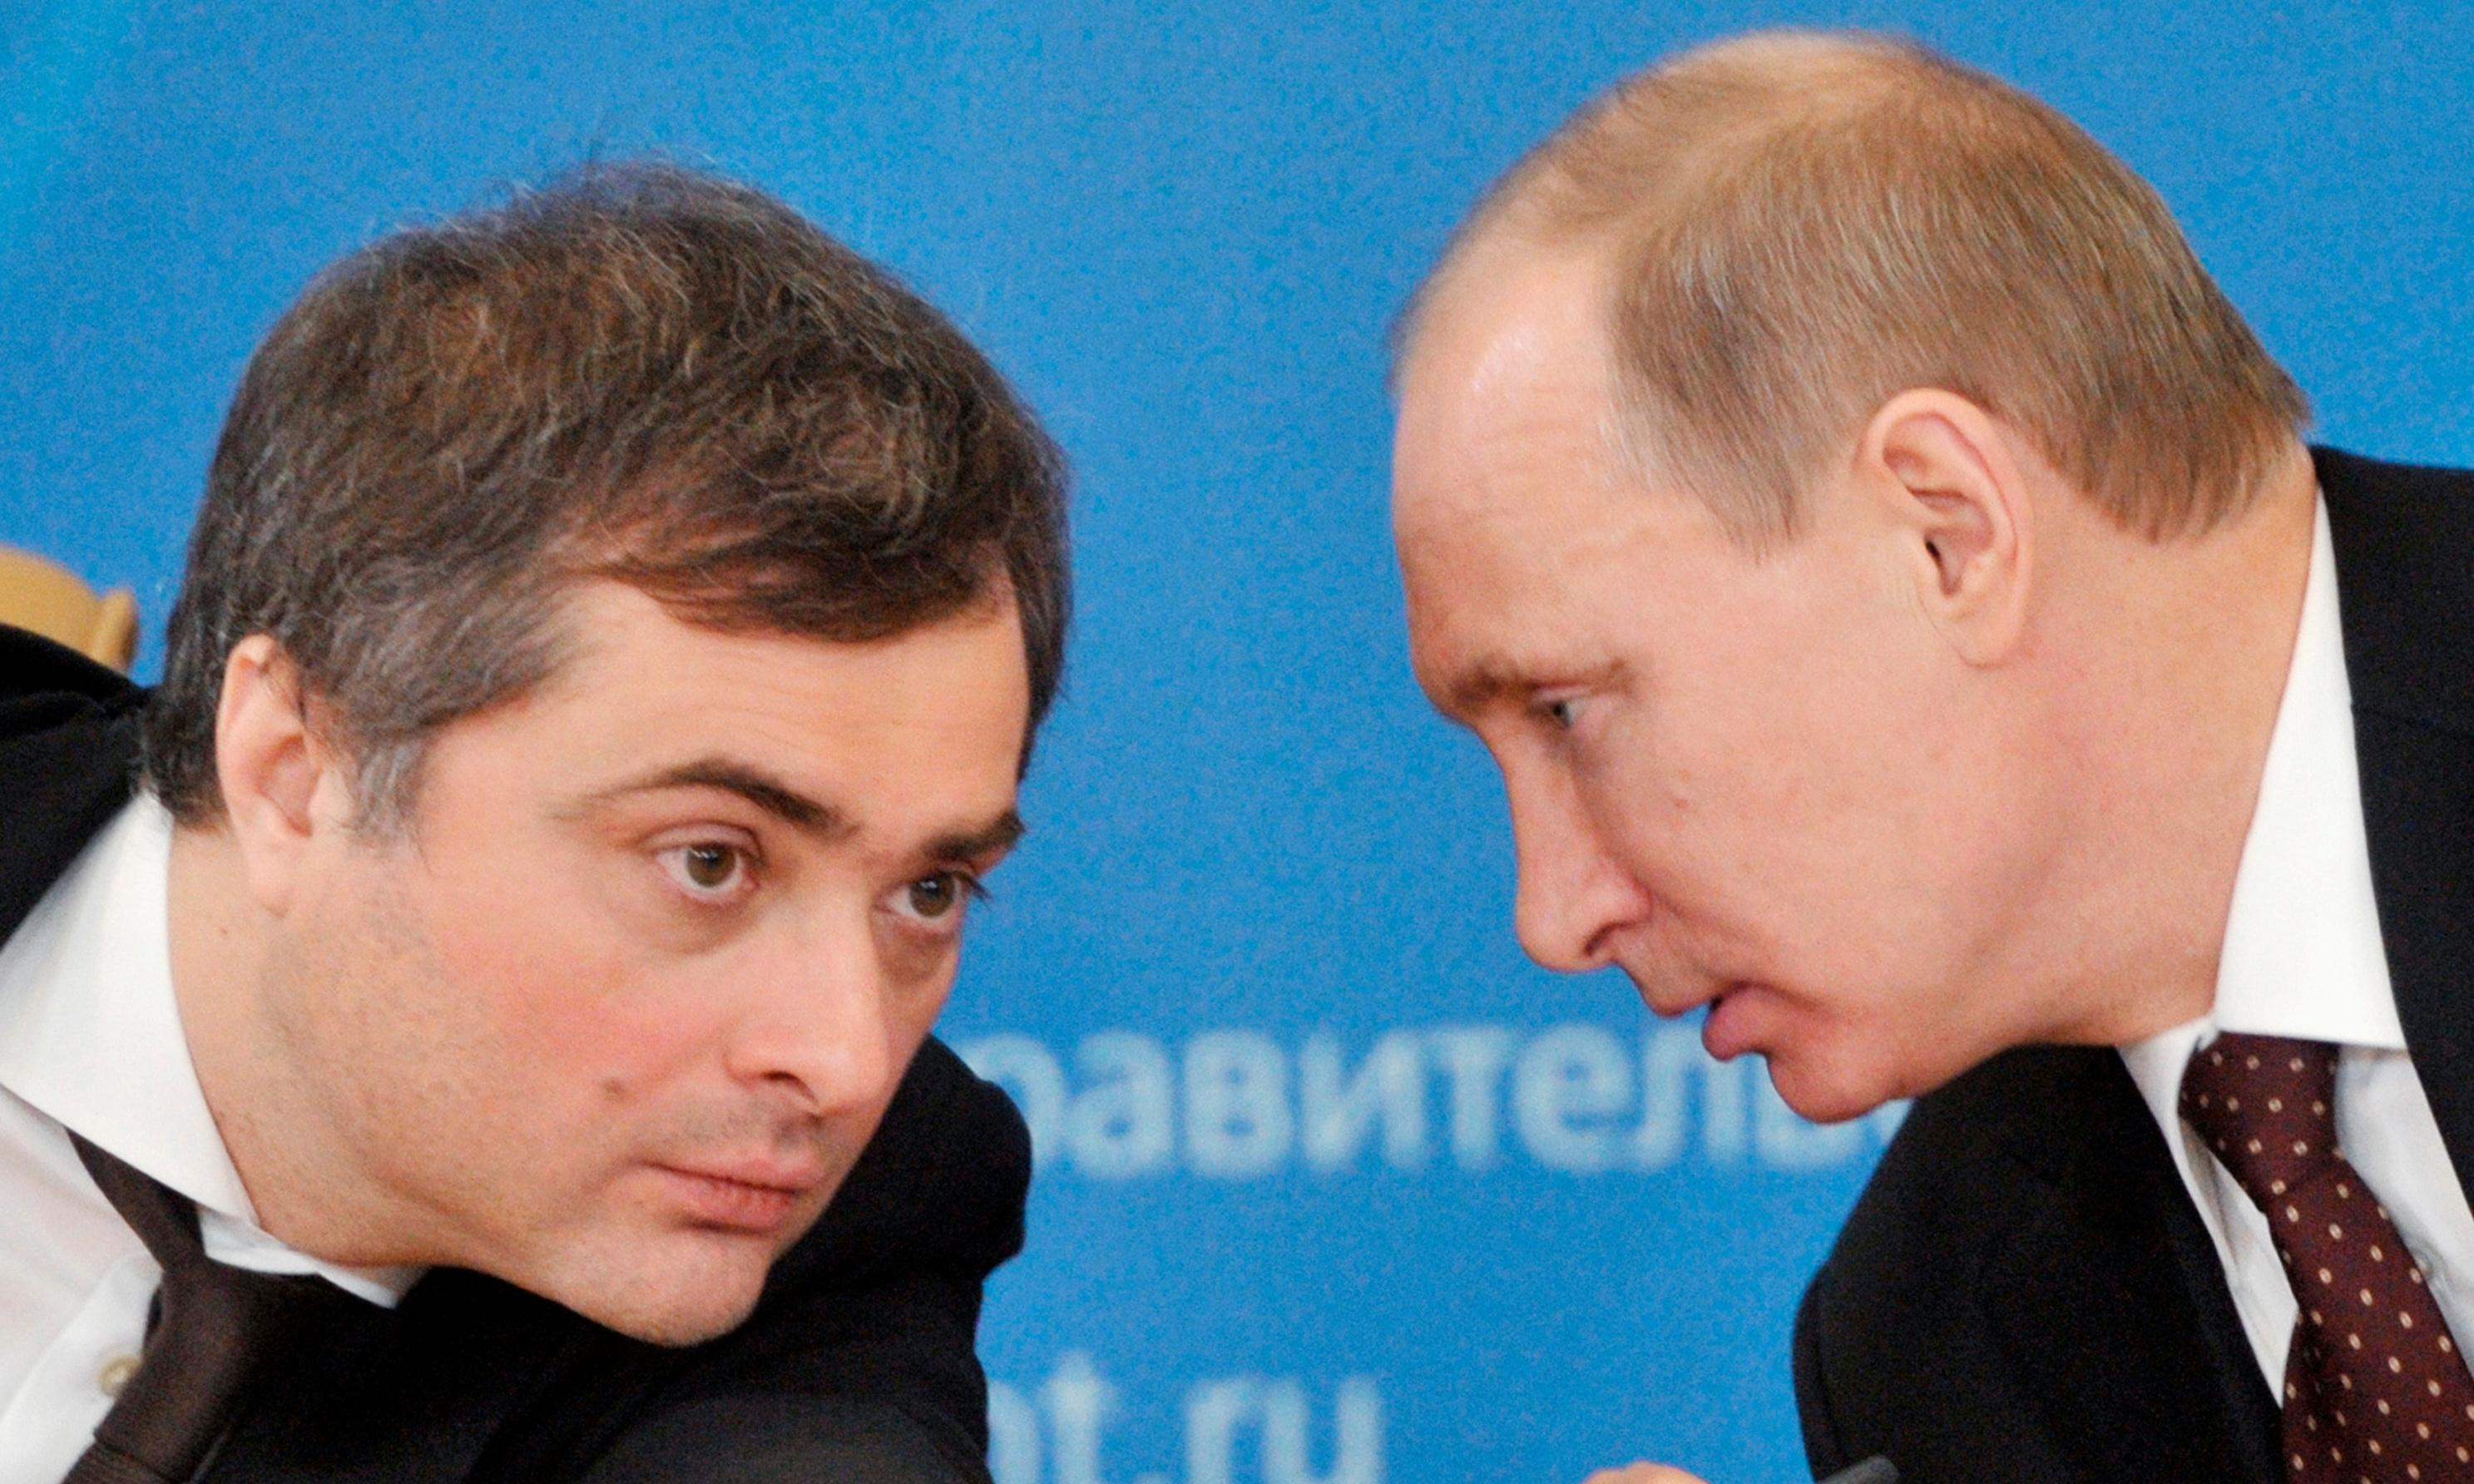 The confusion around Russian 'meddling' means they're already winning